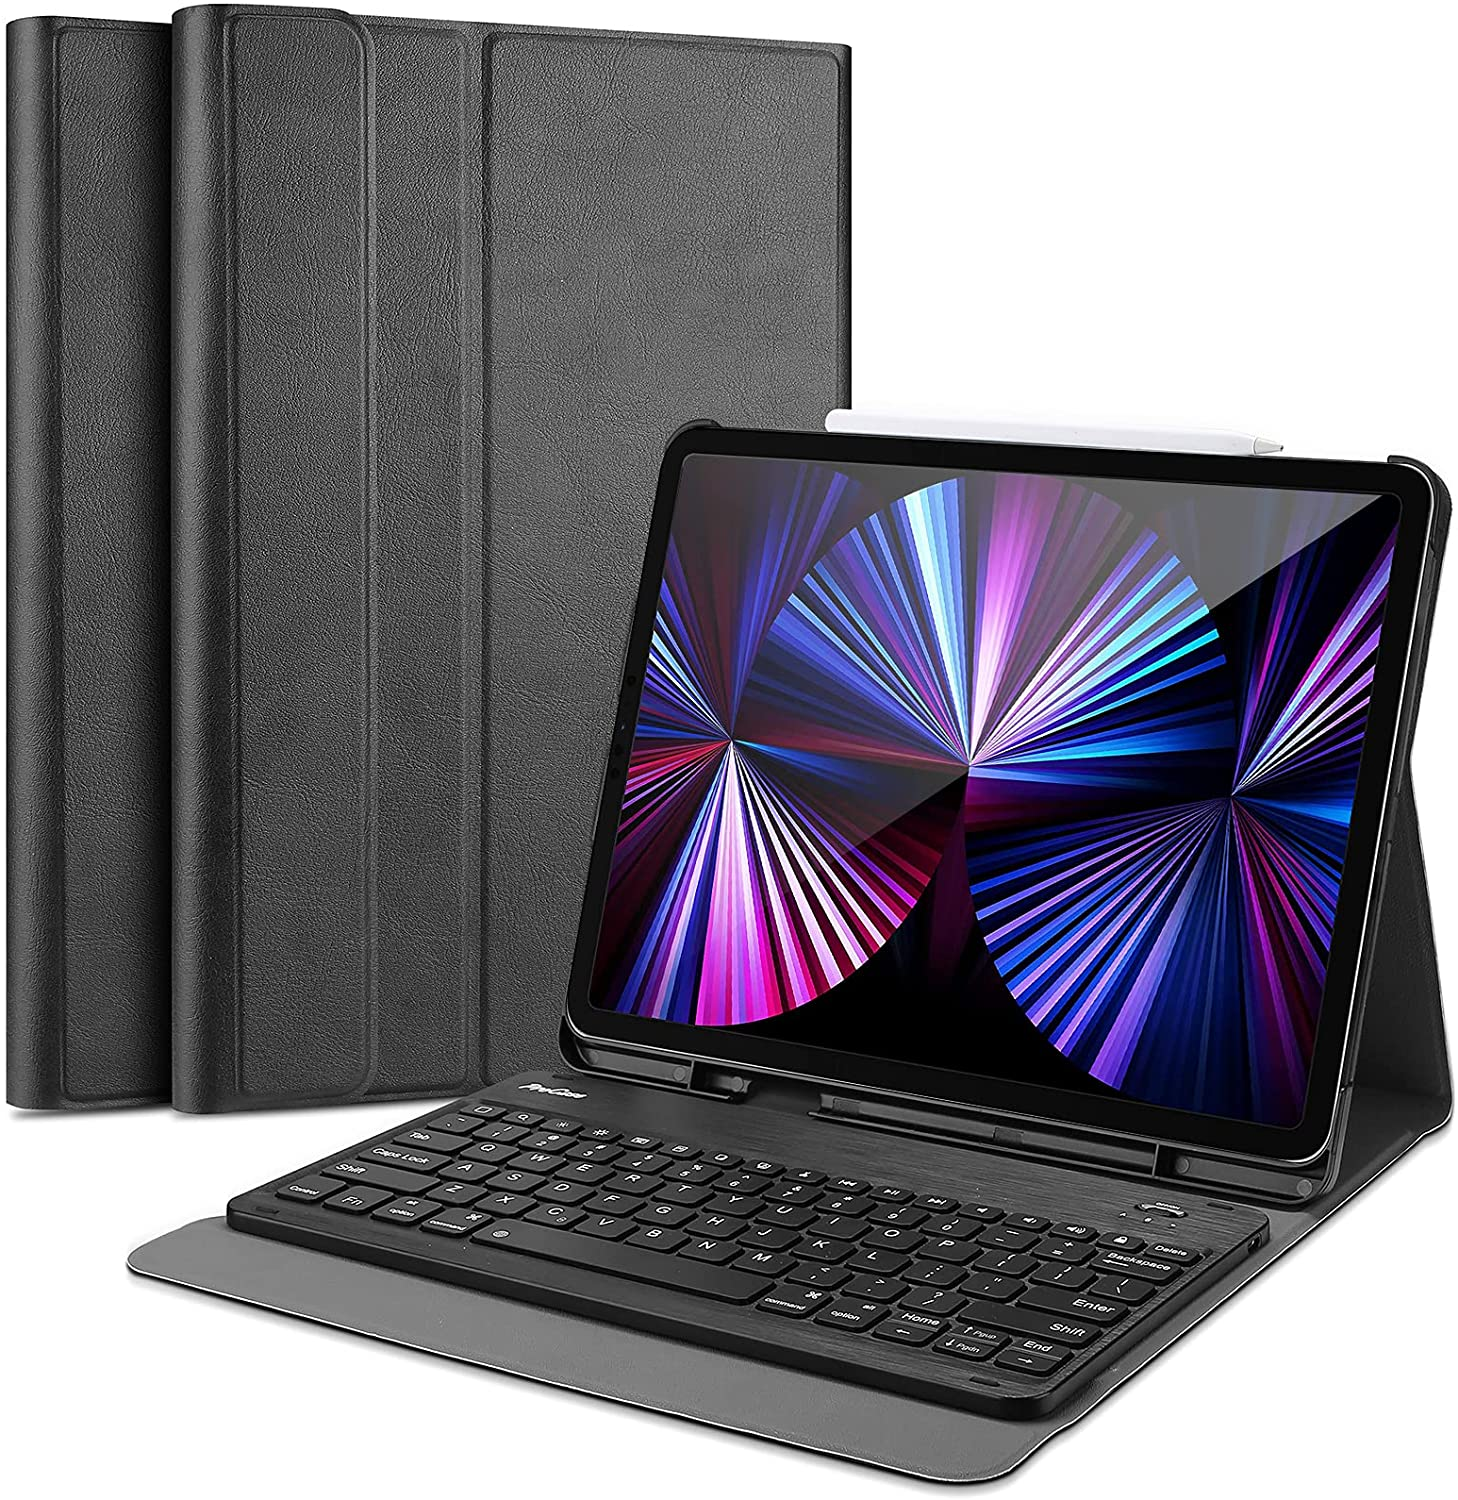 ProCase iPad Pro 11 Keyboard Case 2021 2020 2018, Slim Shell Lightweight Cover with Magnetically Detachable Wireless Keyboard and Pencil Holder for iPad Pro 11 Inch 3rd Gen / 2nd Gen / 1st Gen -Black